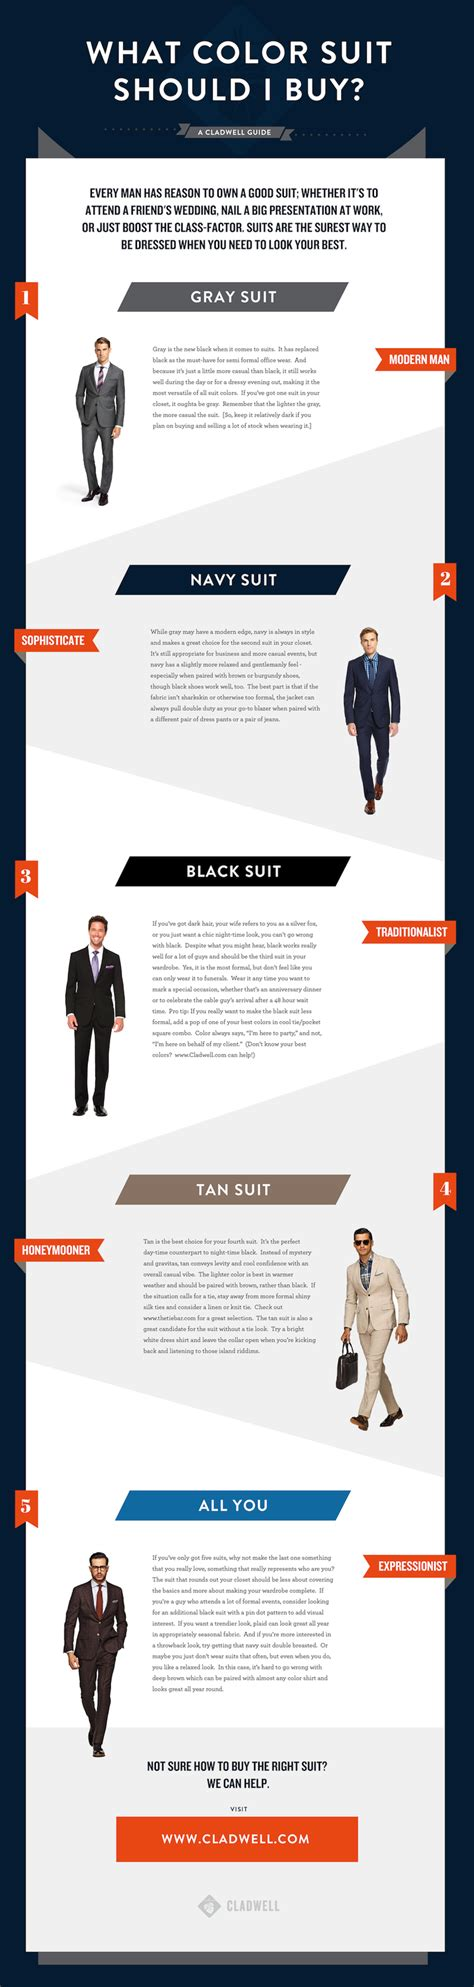 What Color Suit Should I Buy? Men's Suit Coloring Guide